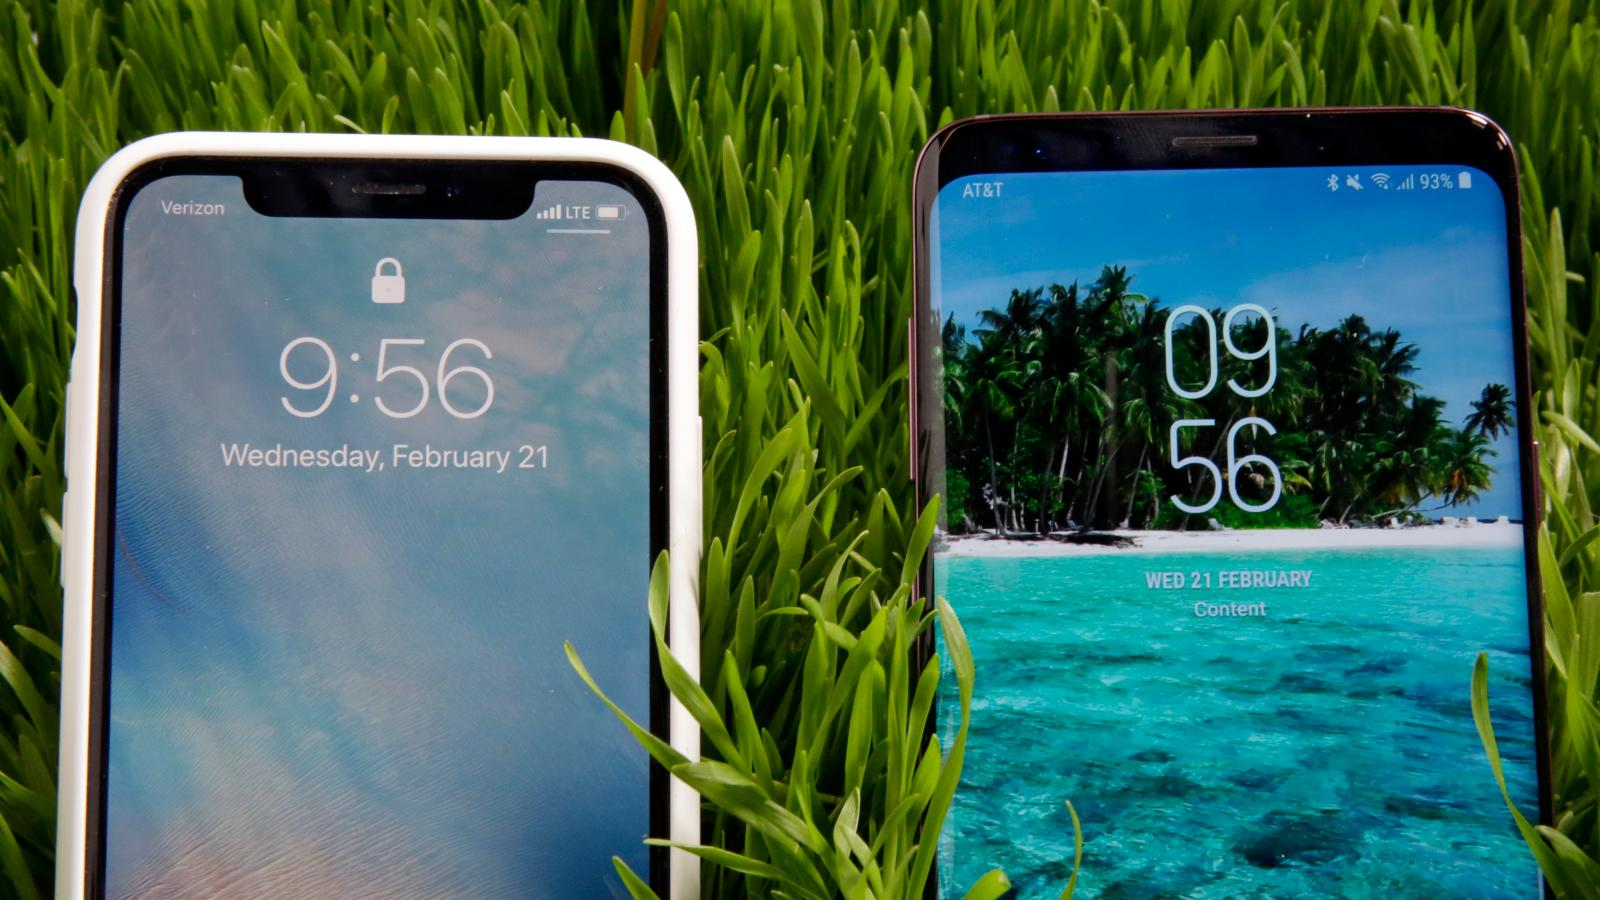 Iphone X Versus Samsung Galaxy S9 Comparison Whats Really The